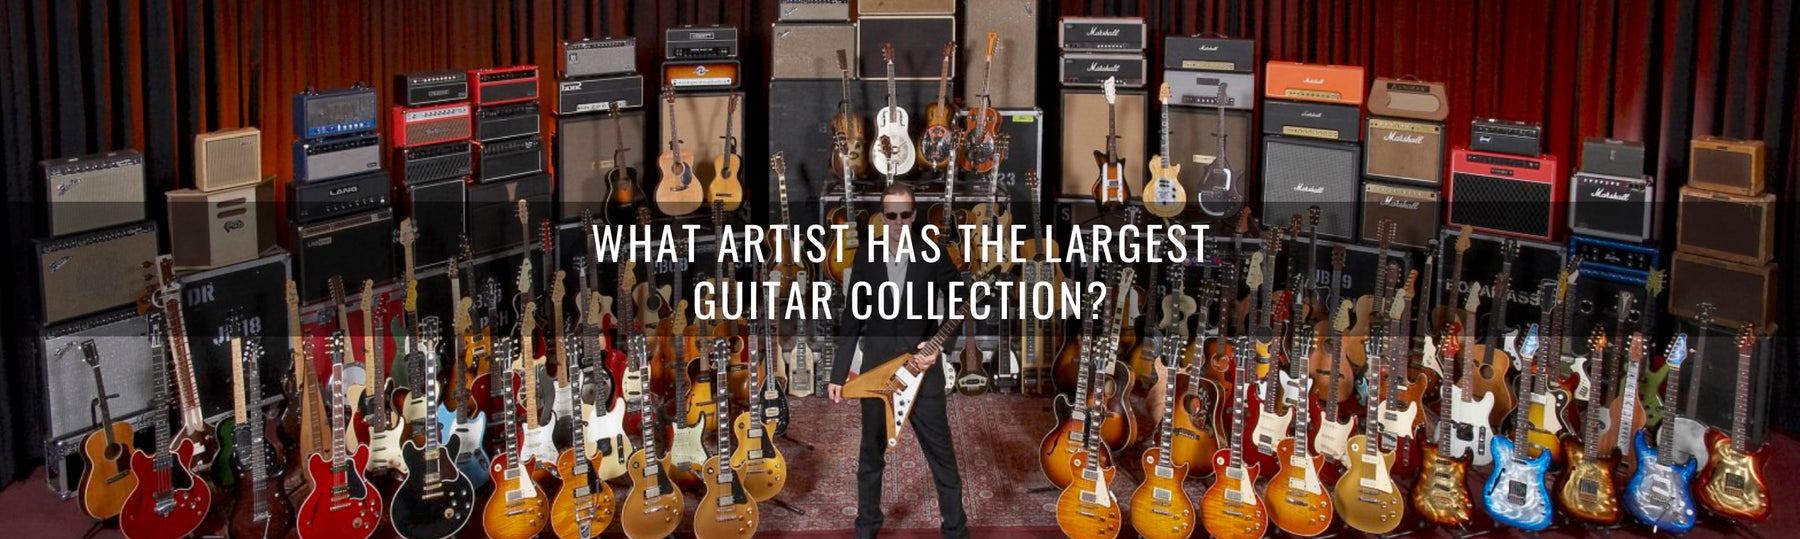 What Artist Has The Largest Guitar Collection?